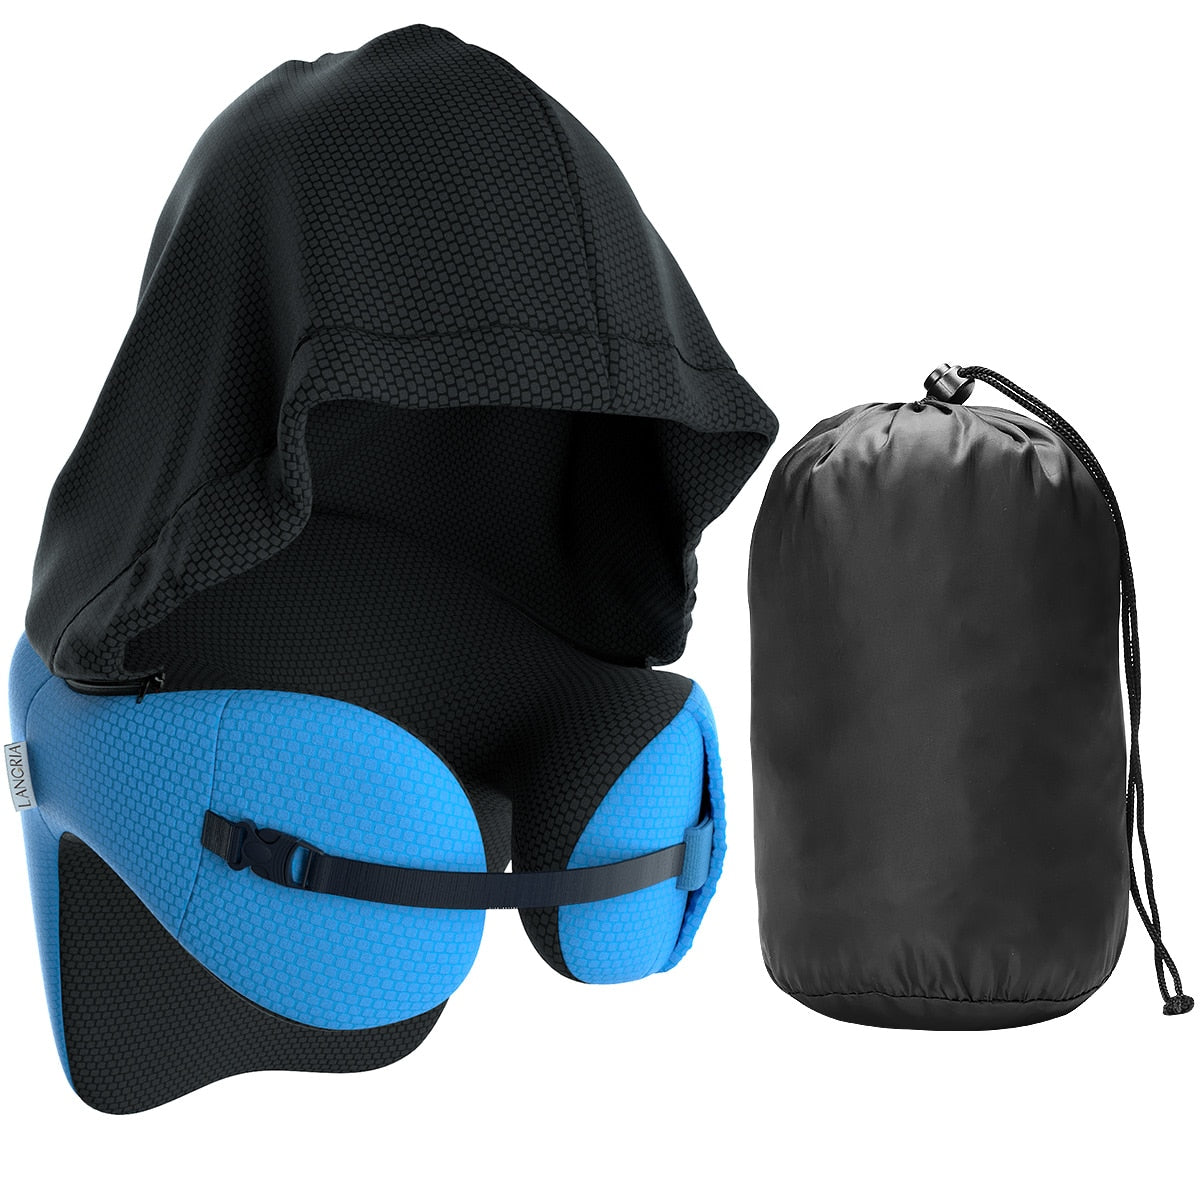 6-in-1 Travel Pillow